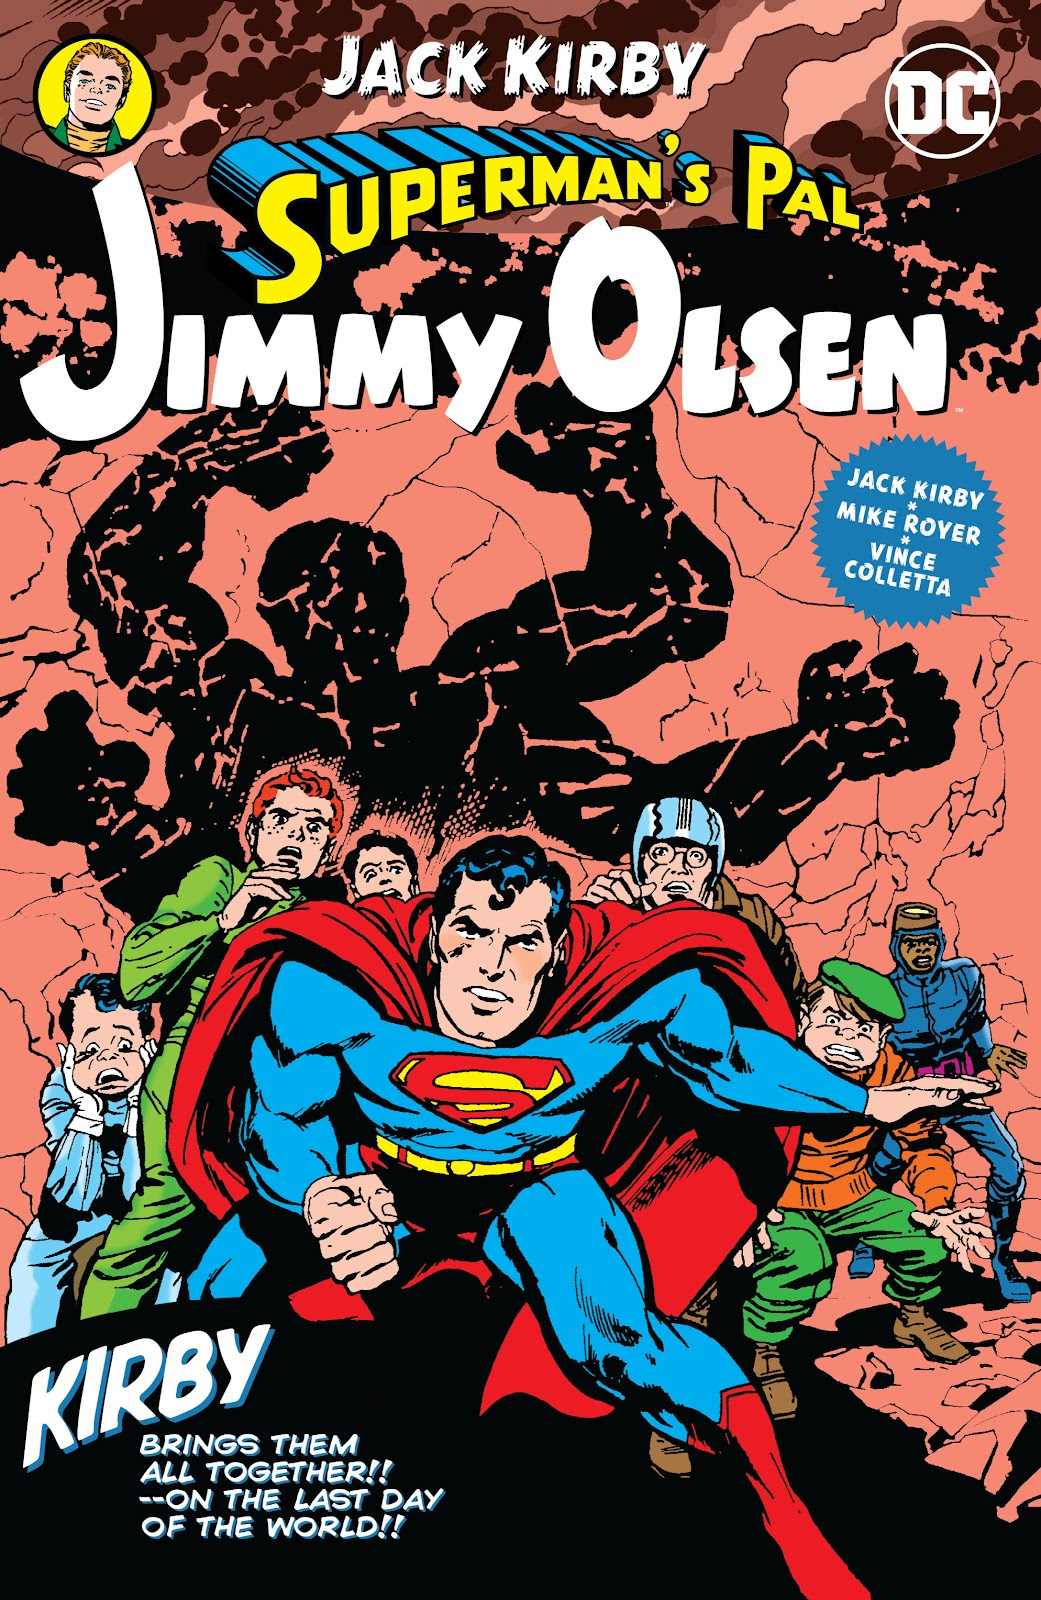 Read online Superman's Pal, Jimmy Olsen by Jack Kirby comic -  Issue # TPB (Part 1) - 1